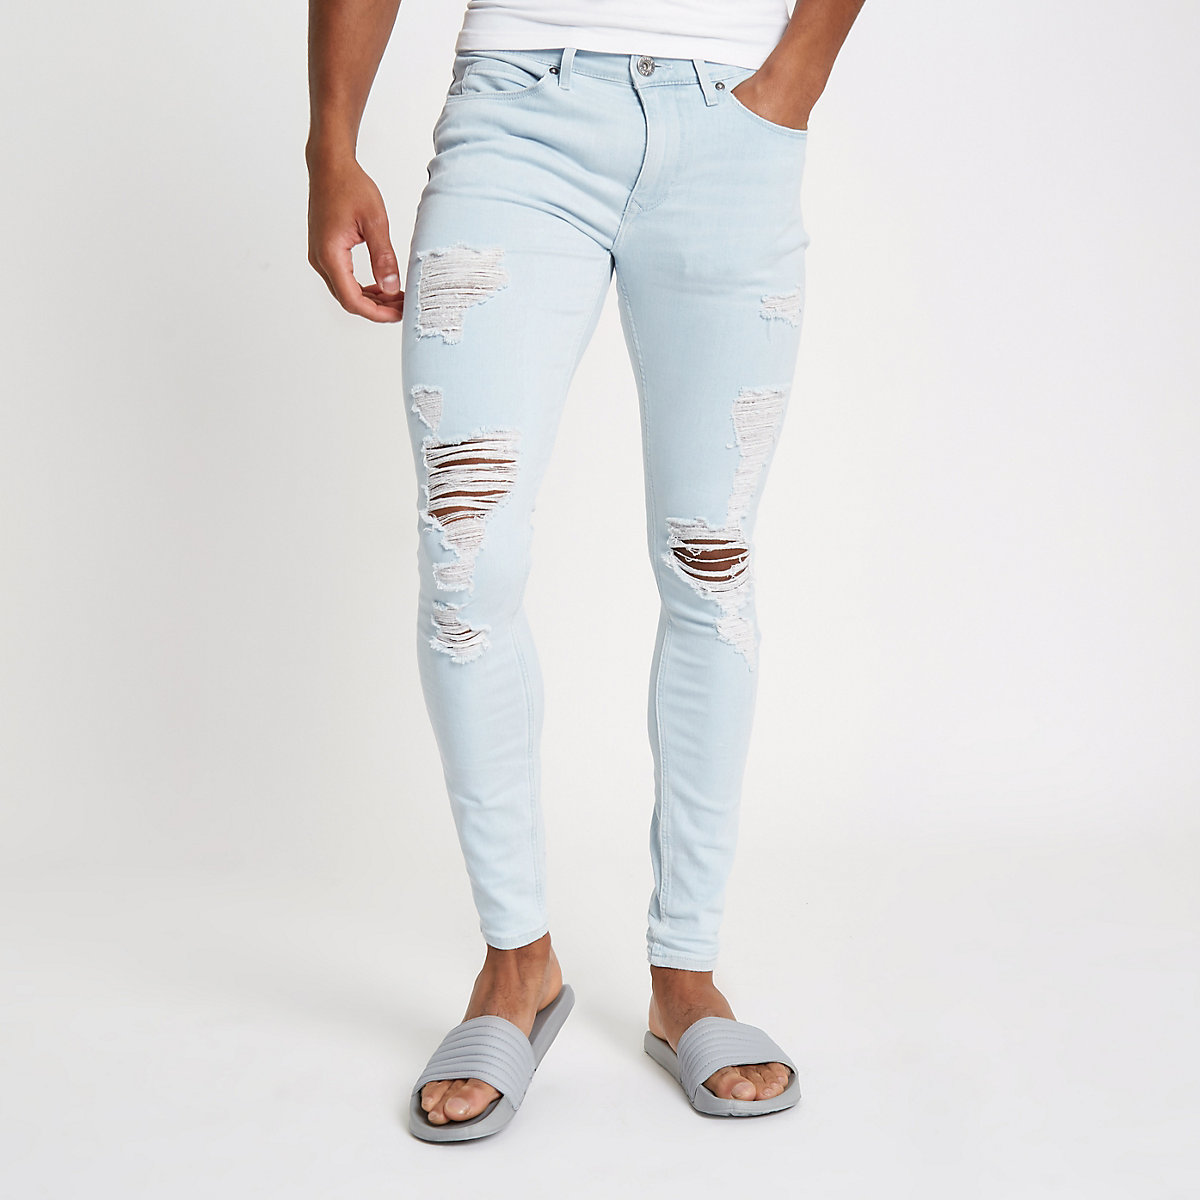 Light blue Ollie ripped spray on skinny jeans